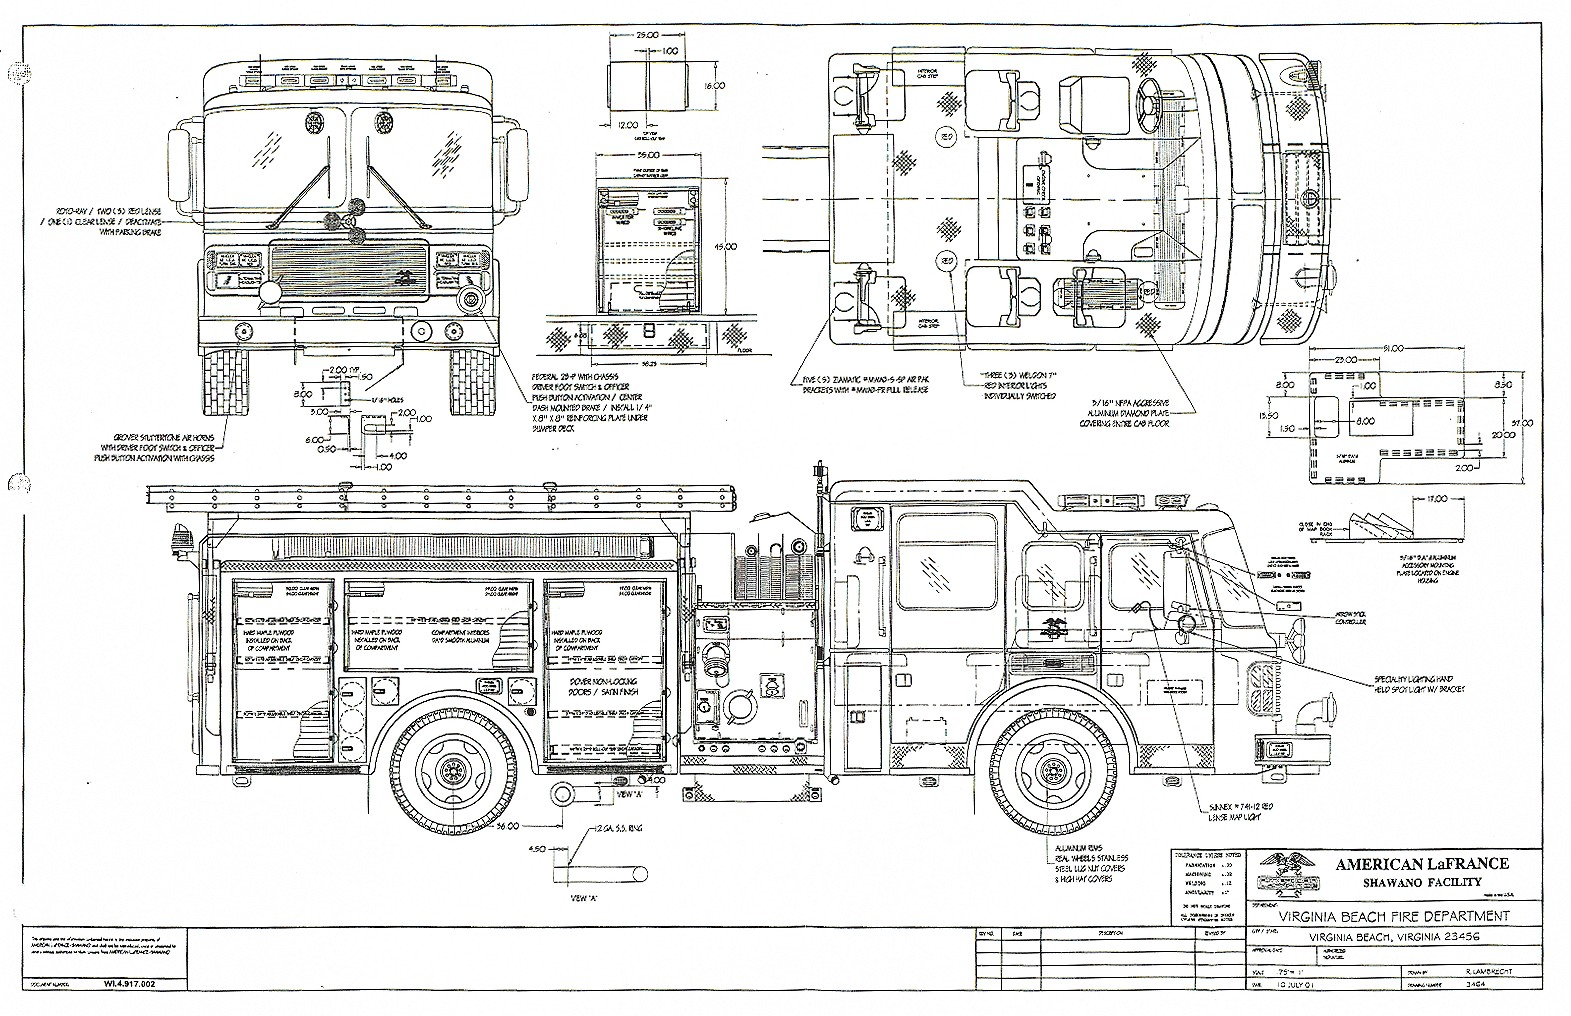 Fire Truck Van Schematic Wire Center Diagram Of Pierce Engine American Lafrance Eagle Pumper Blueprint Download Free Rh Drawingdatabase Com Escape